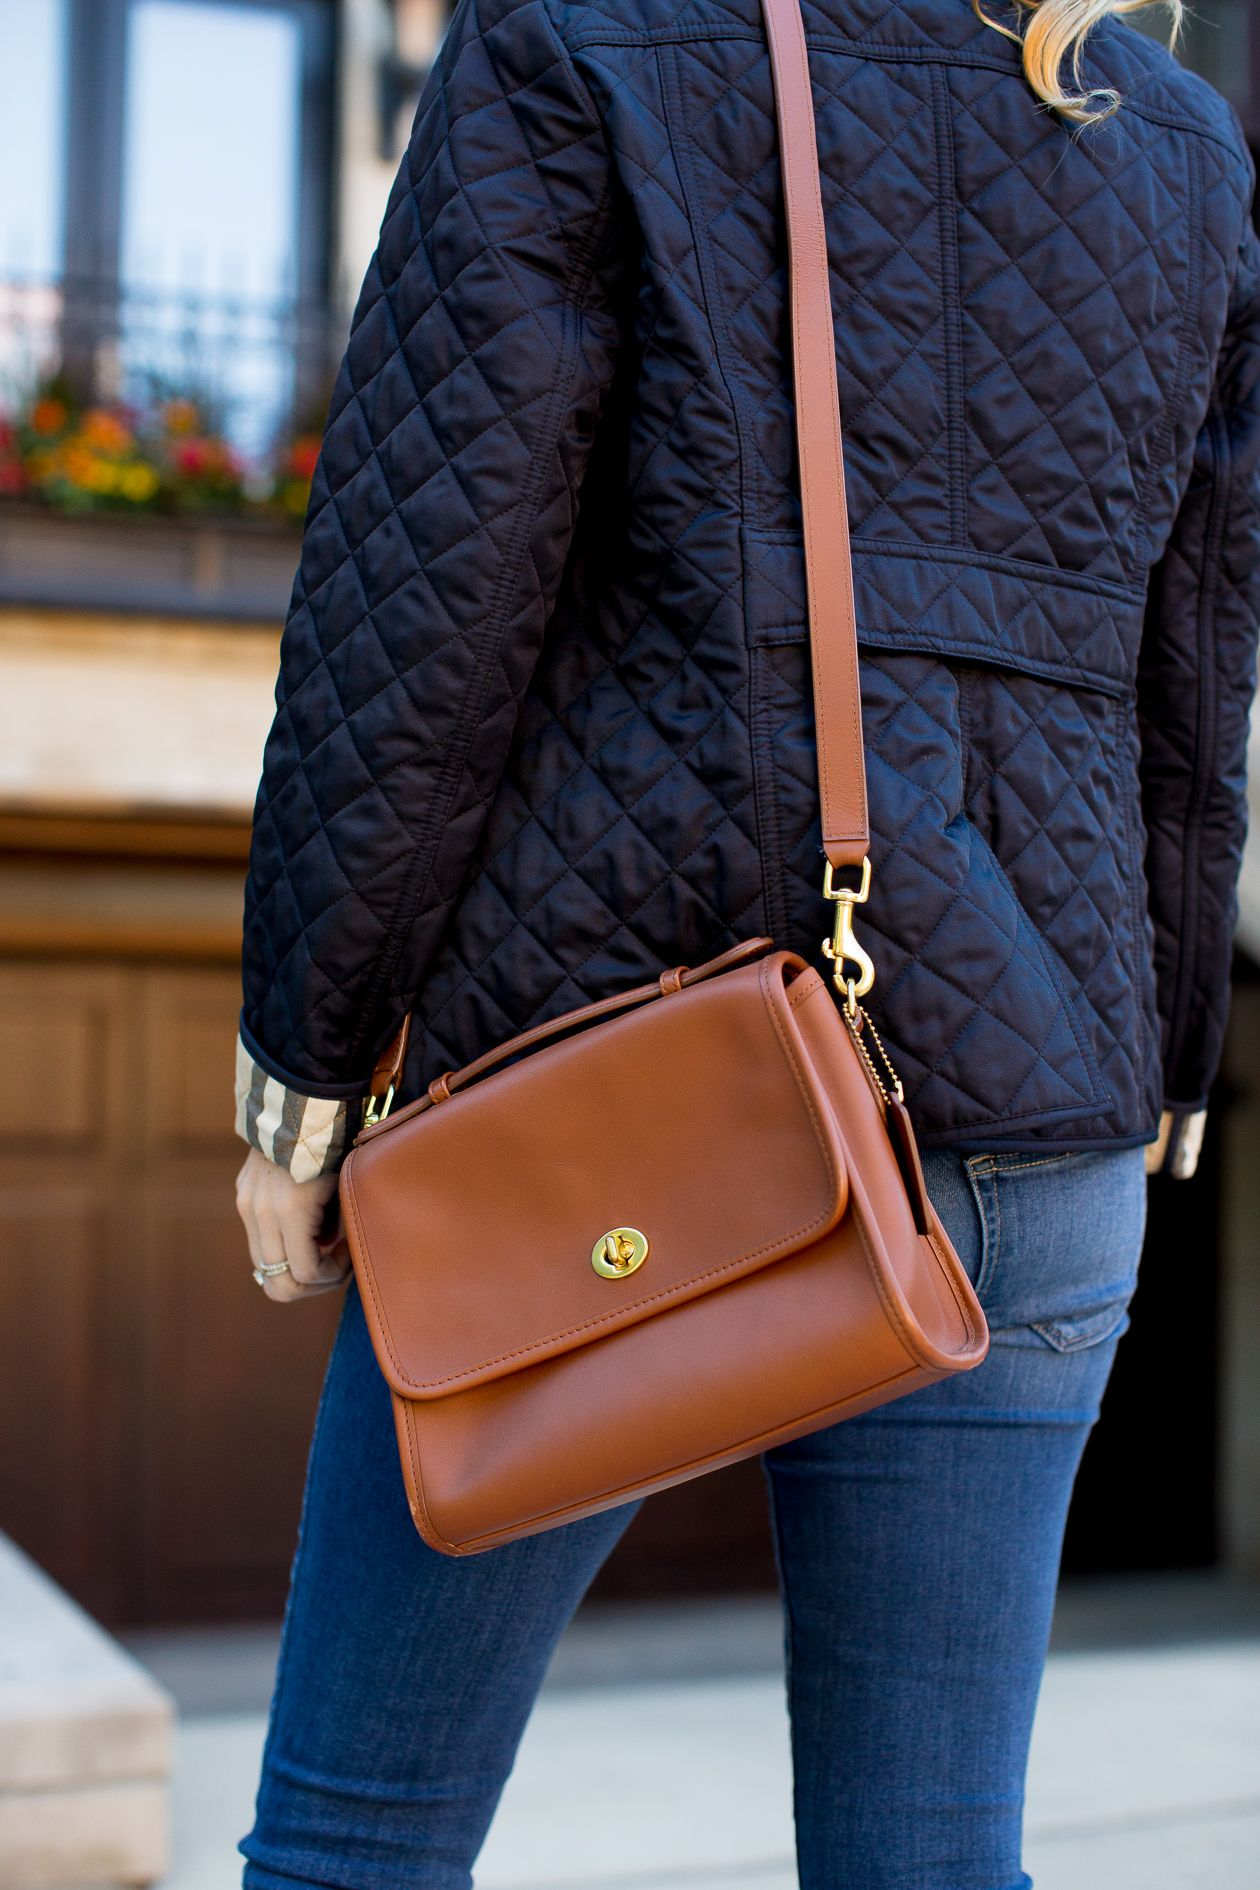 486c0b98f4b5 Burberry Quilted Jacket with Coach Bag